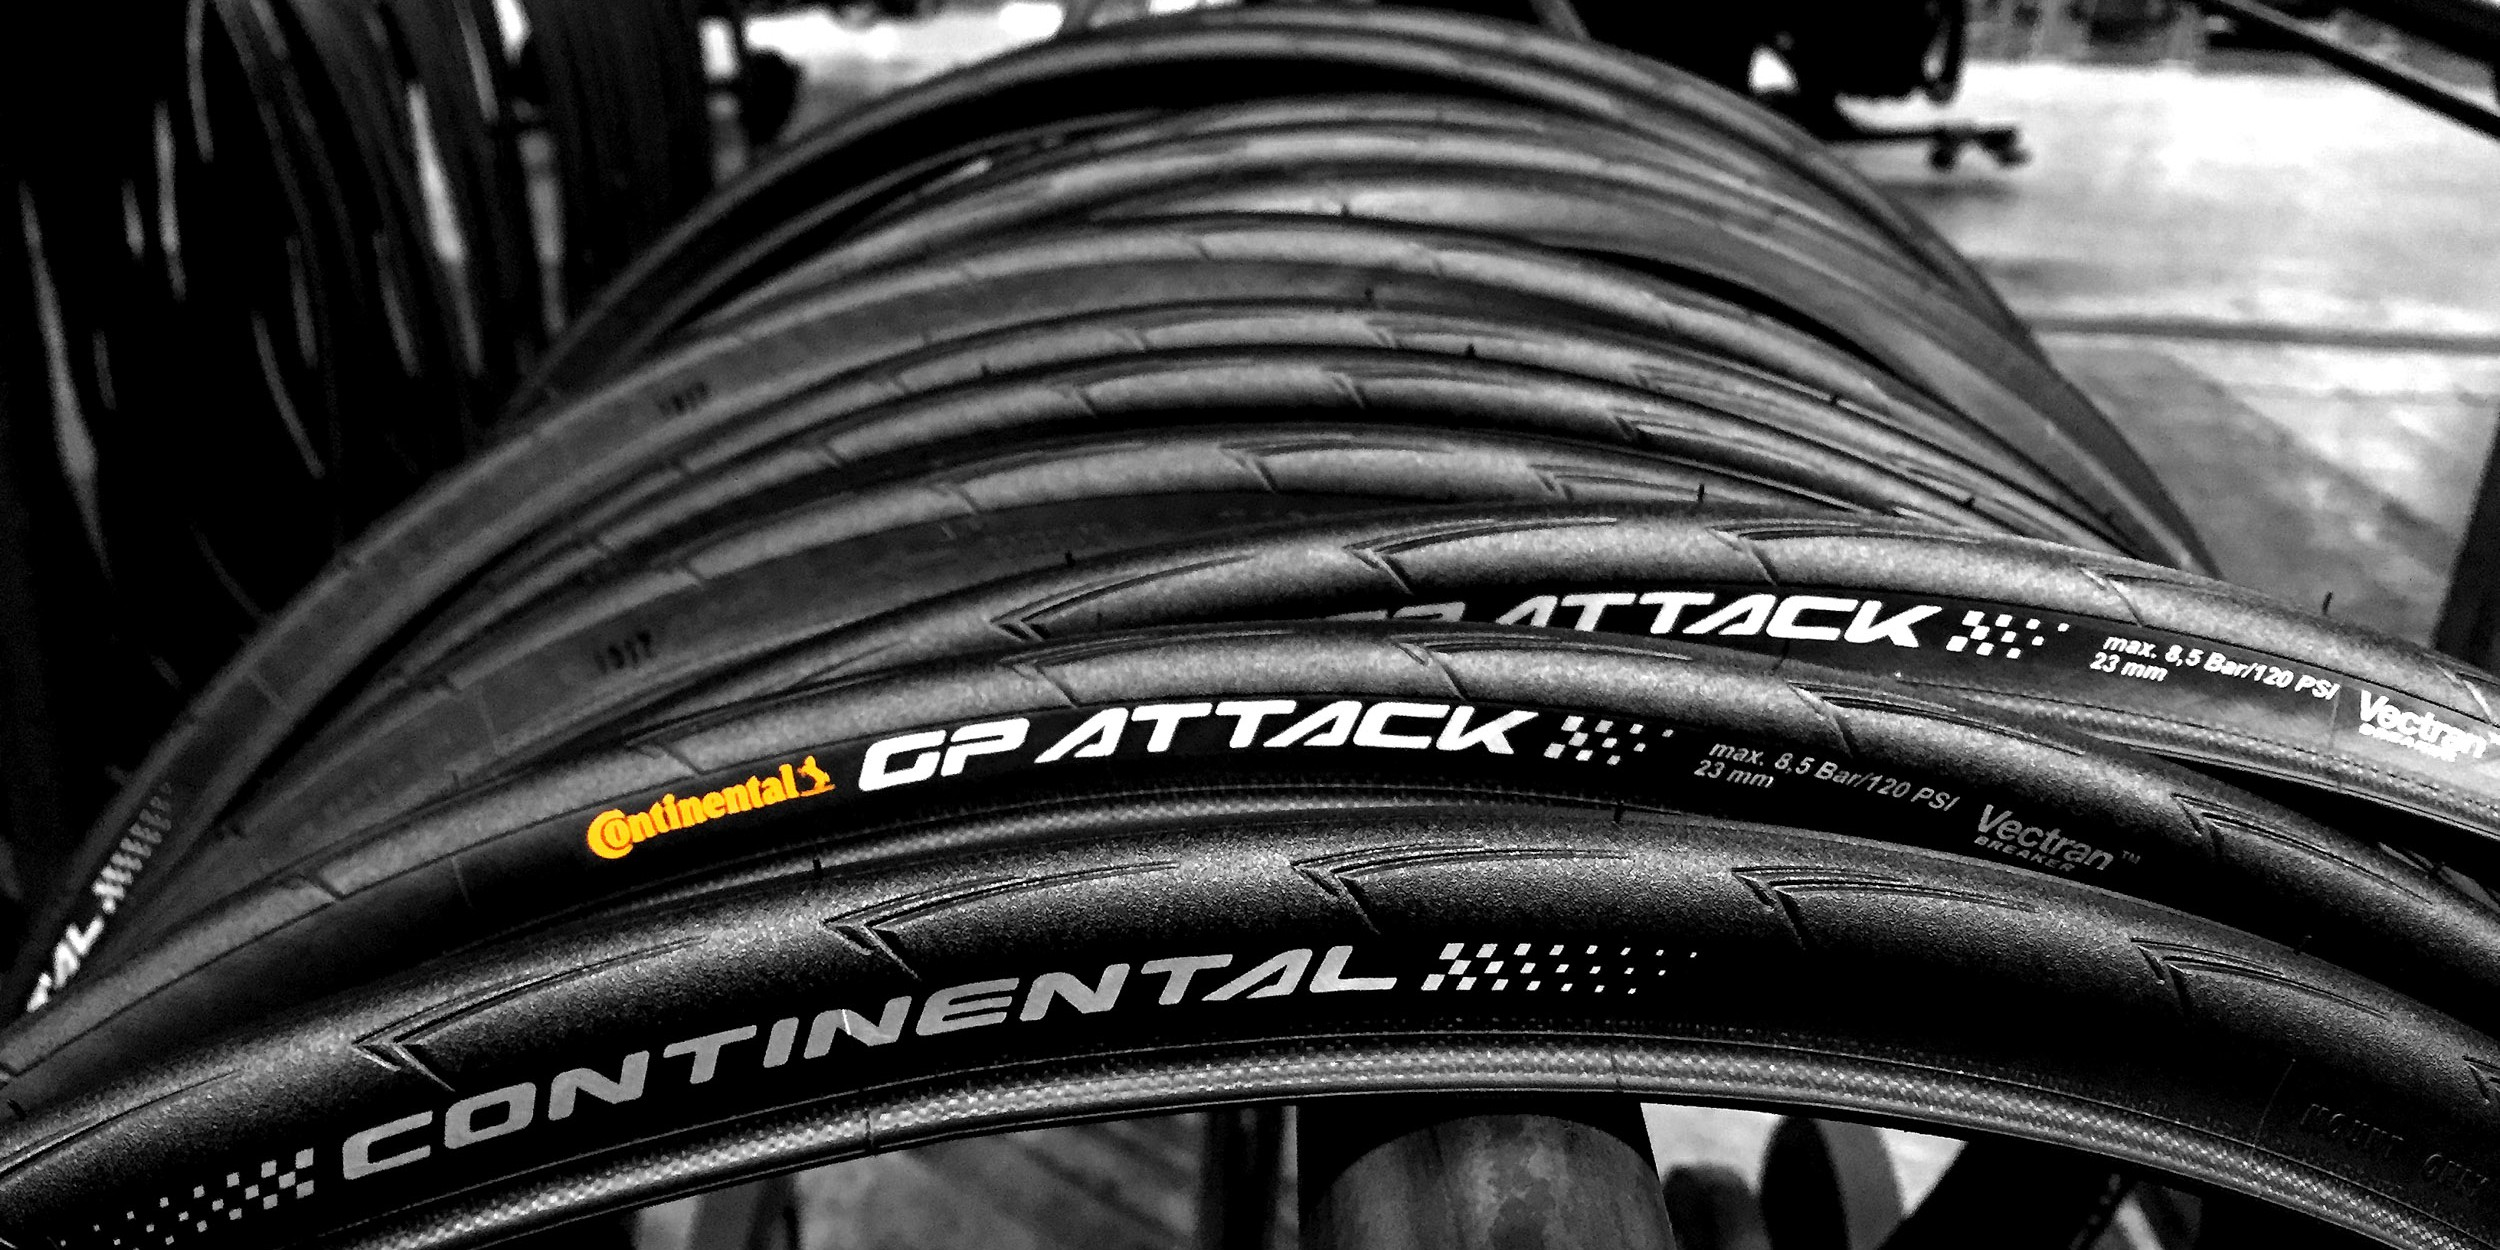 Continental GP Attack & Force III